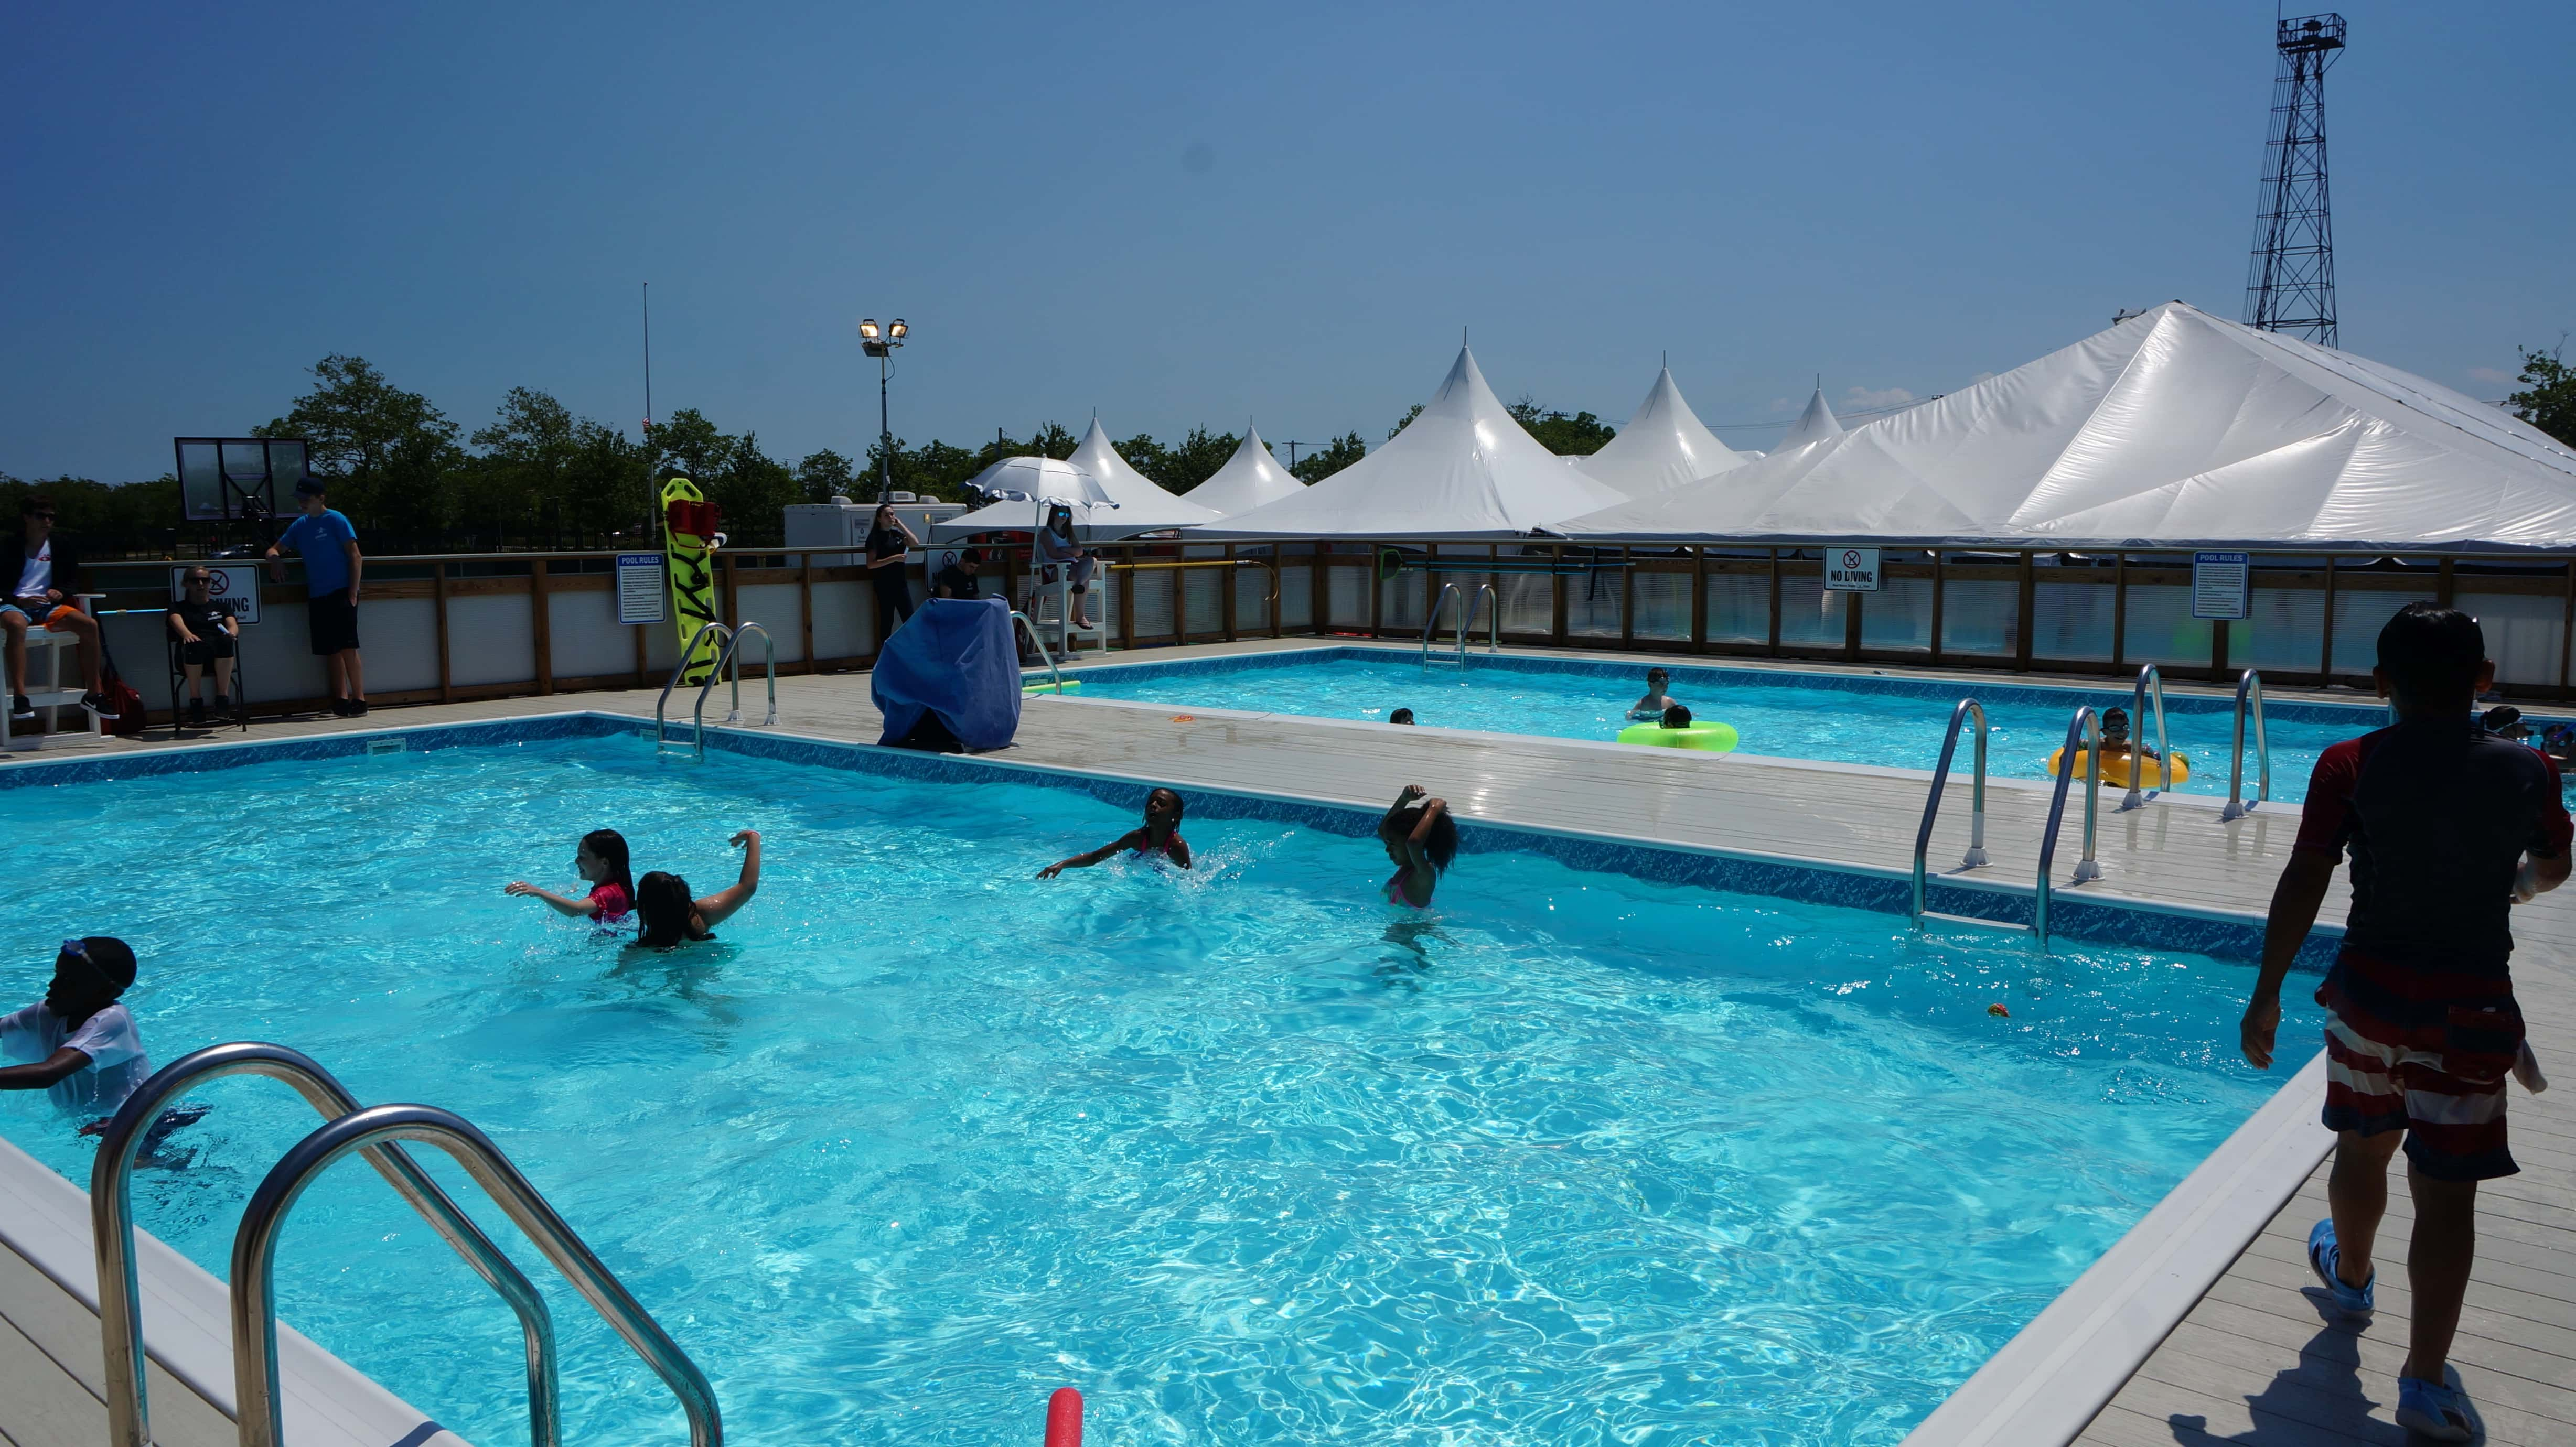 Brooklyn Indoor Swimming Pool Excellent With Brooklyn Indoor Swimming Pool Top Image Of Indoor